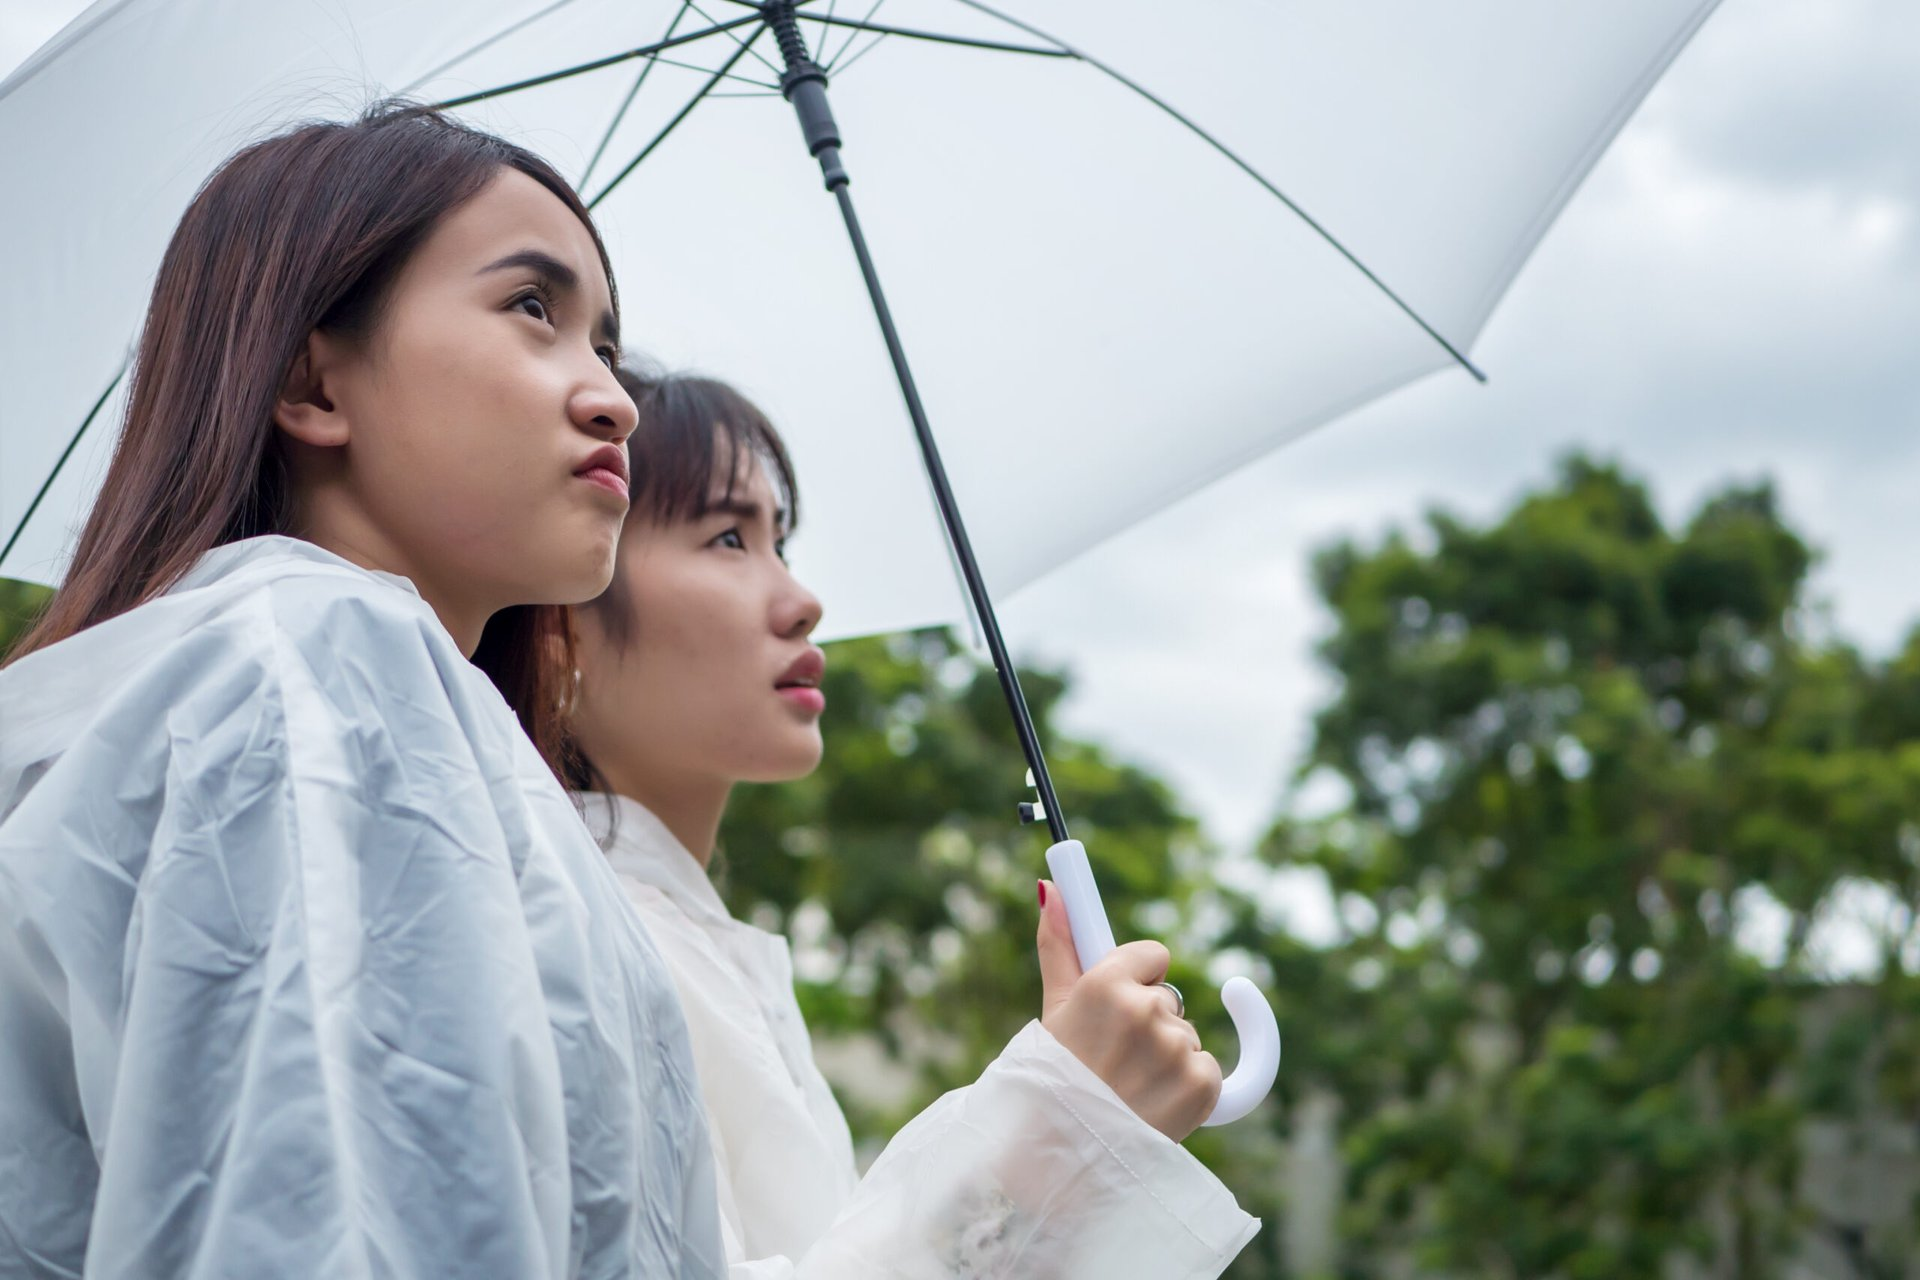 Unhappy women on a cloudy day